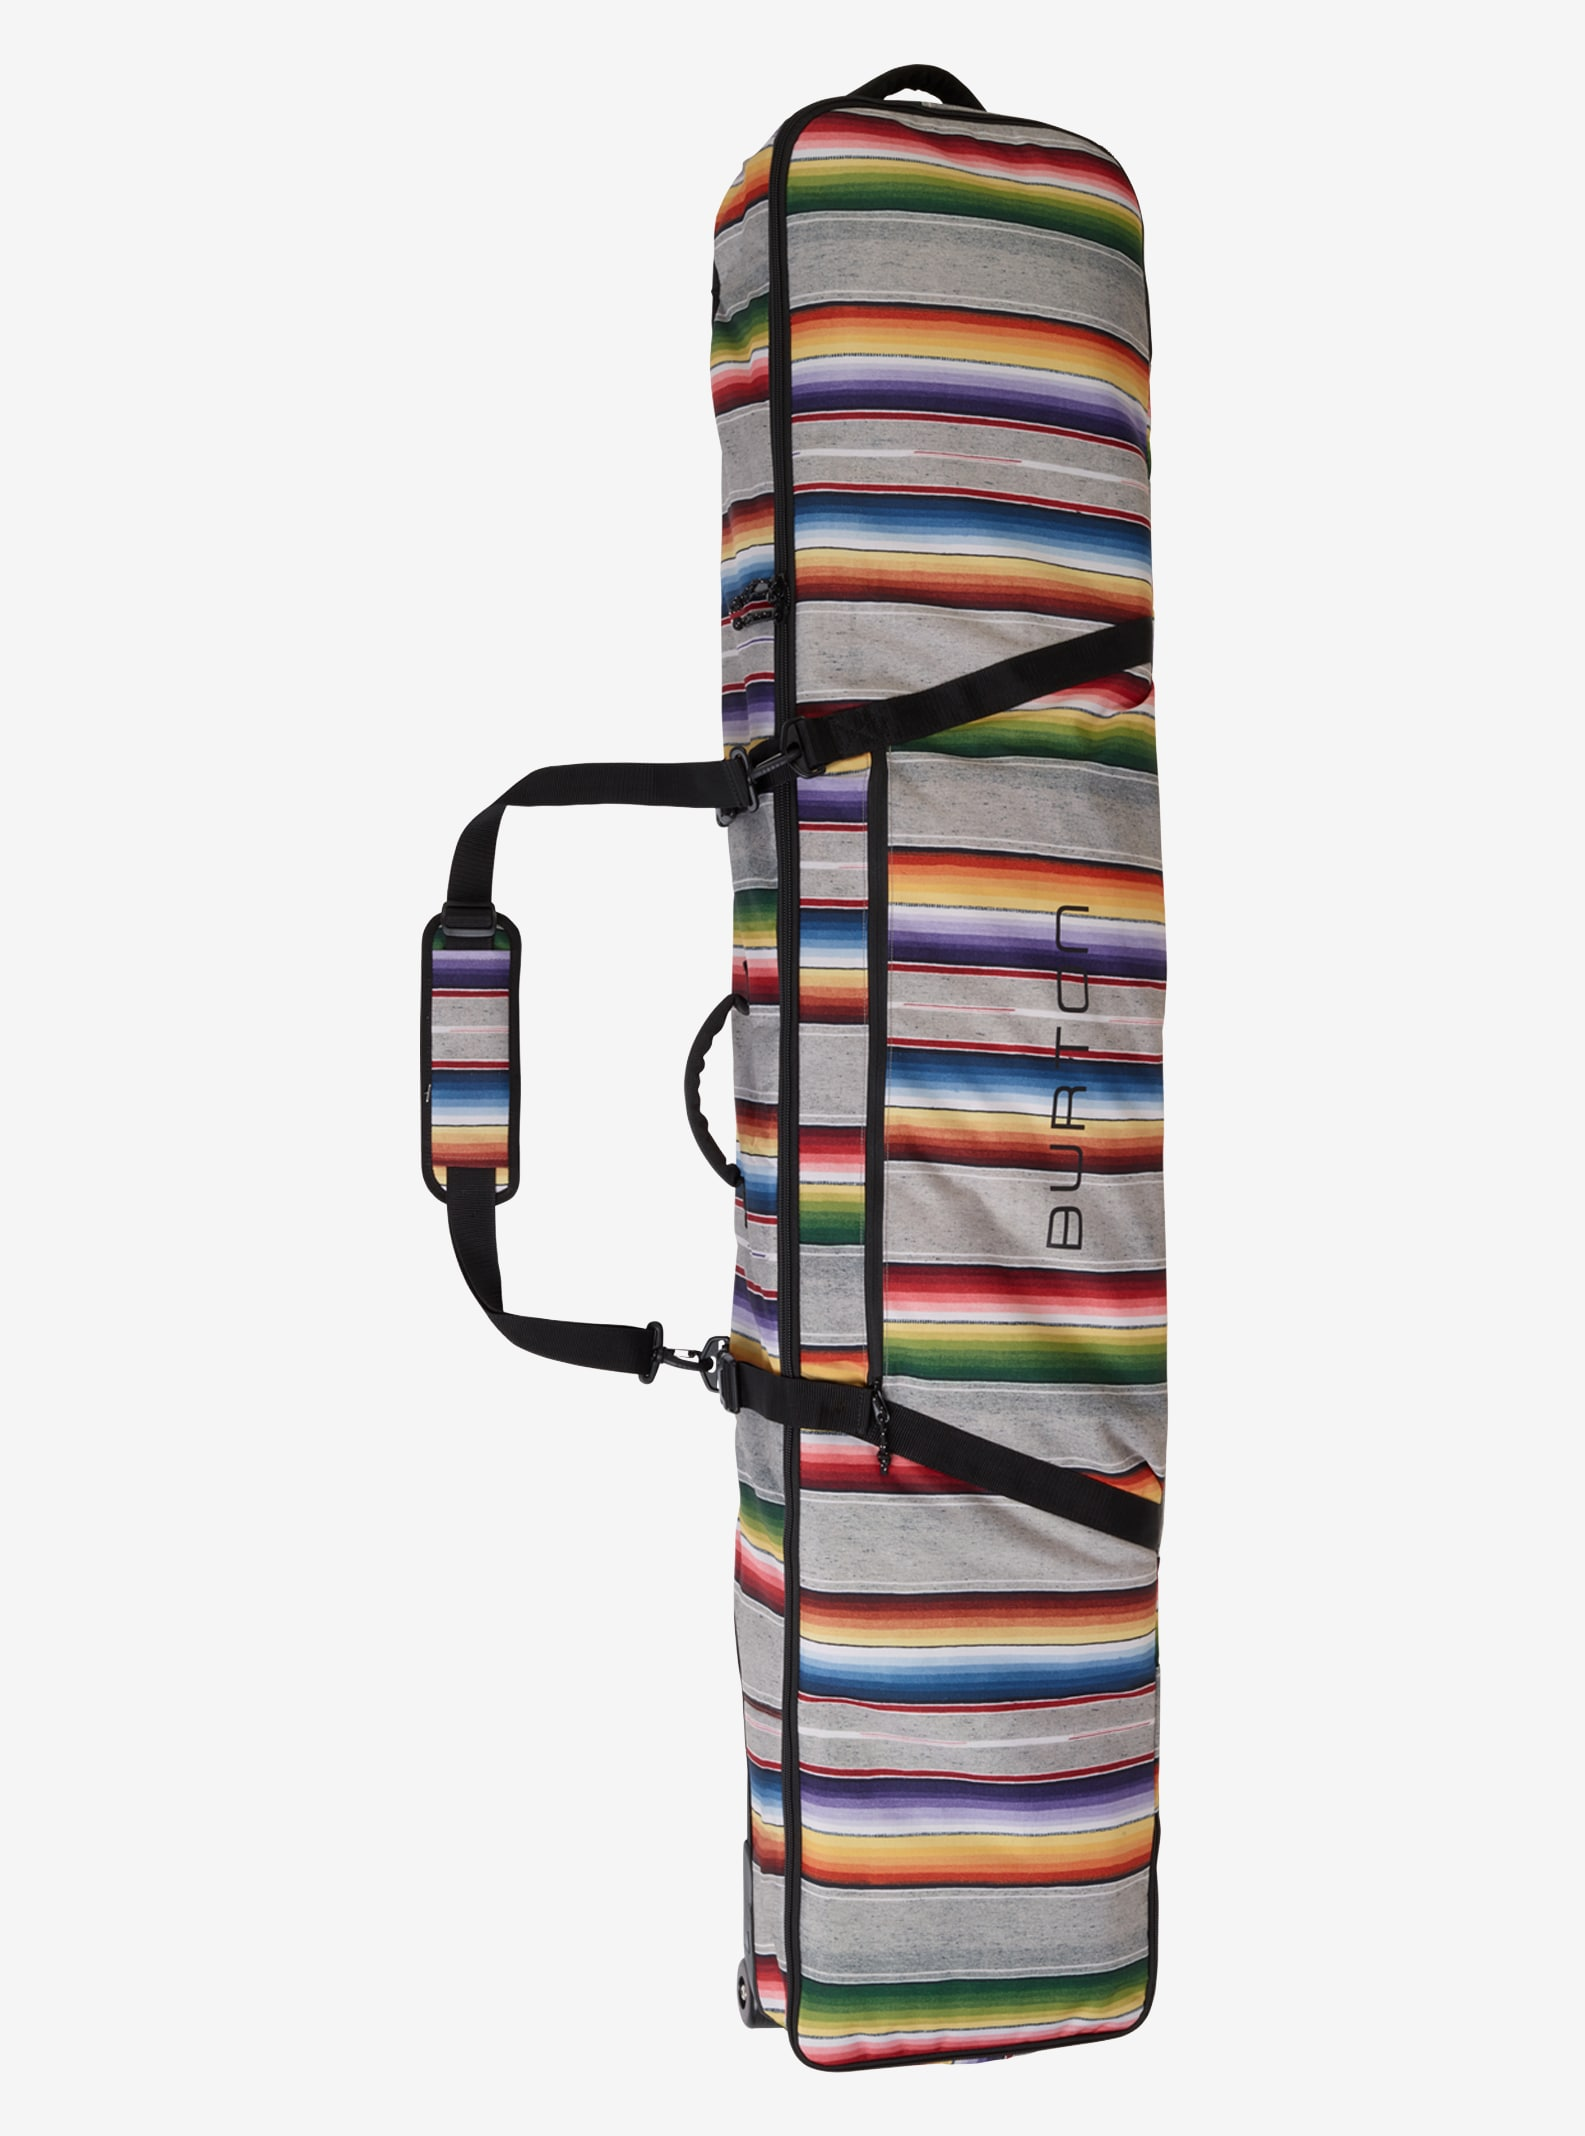 Burton Wheelie Gig Bag shown in Bright Sinola Stripe Print